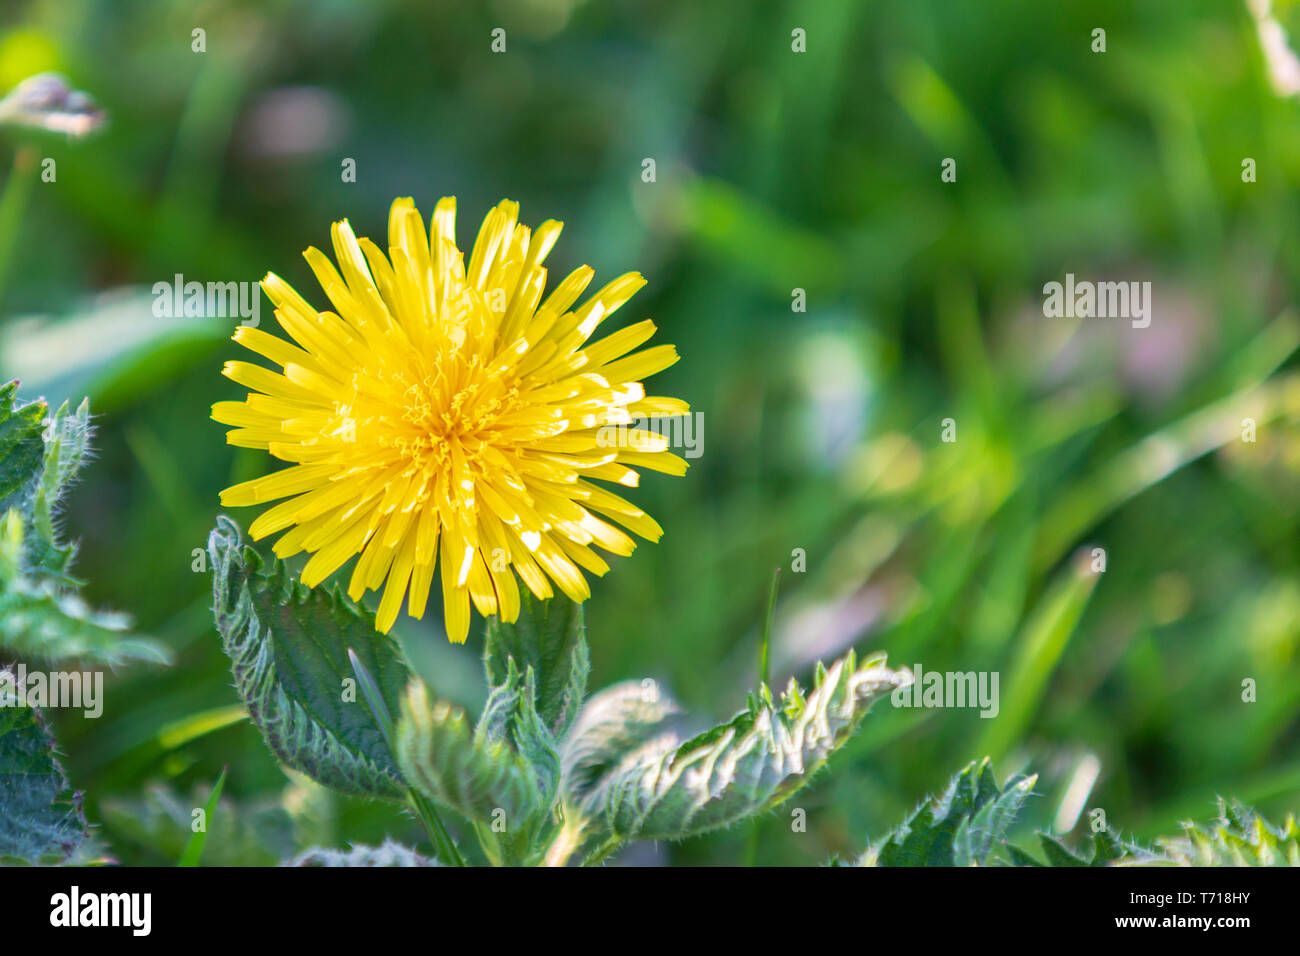 Yellow dandelion flower against green grass with copyspace to the right - Stock Image